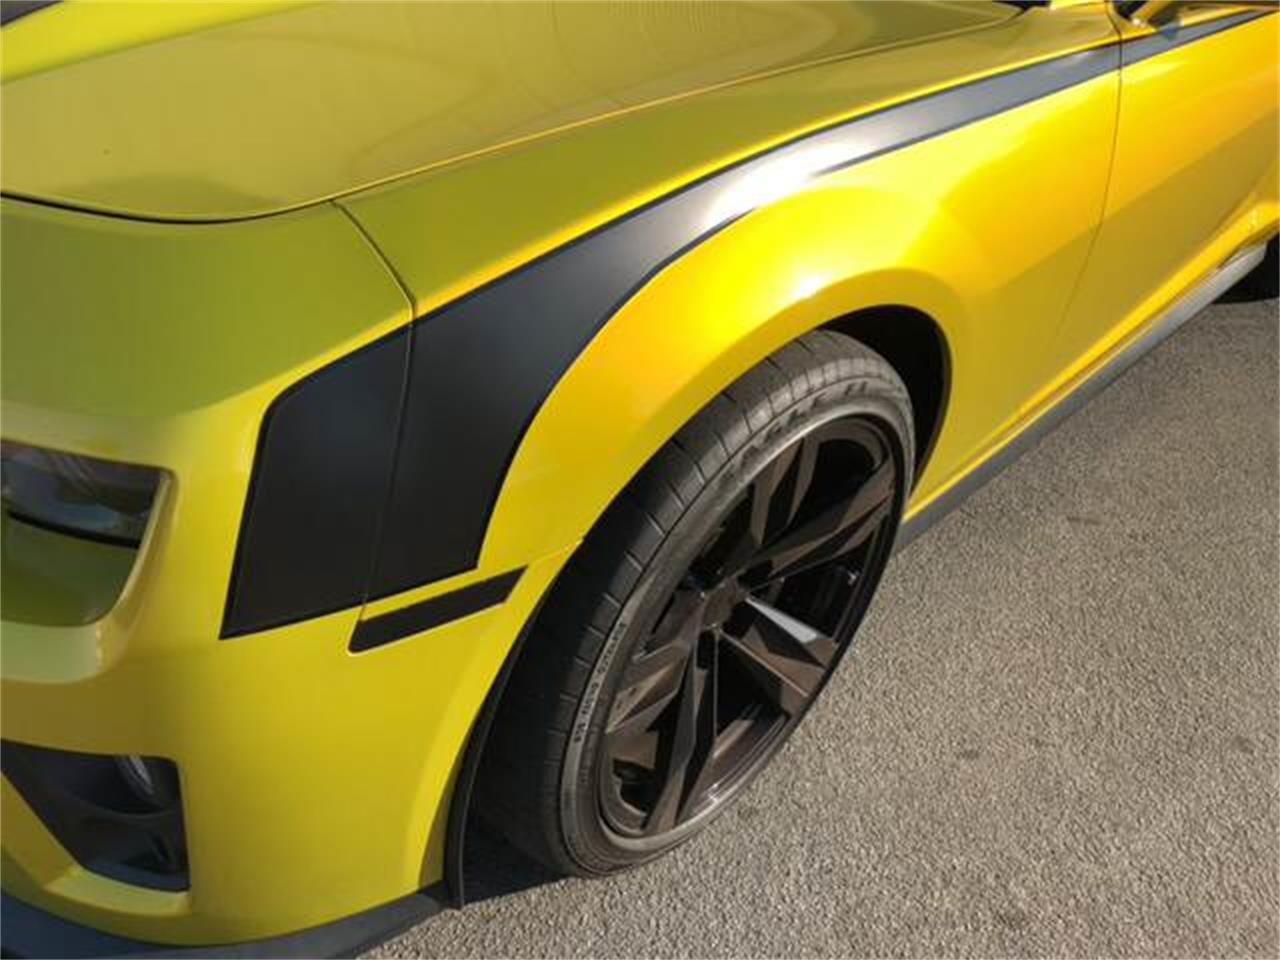 Large Picture of '13 Chevrolet Camaro located in Brea California Auction Vehicle Offered by Highline Motorsports - HO82